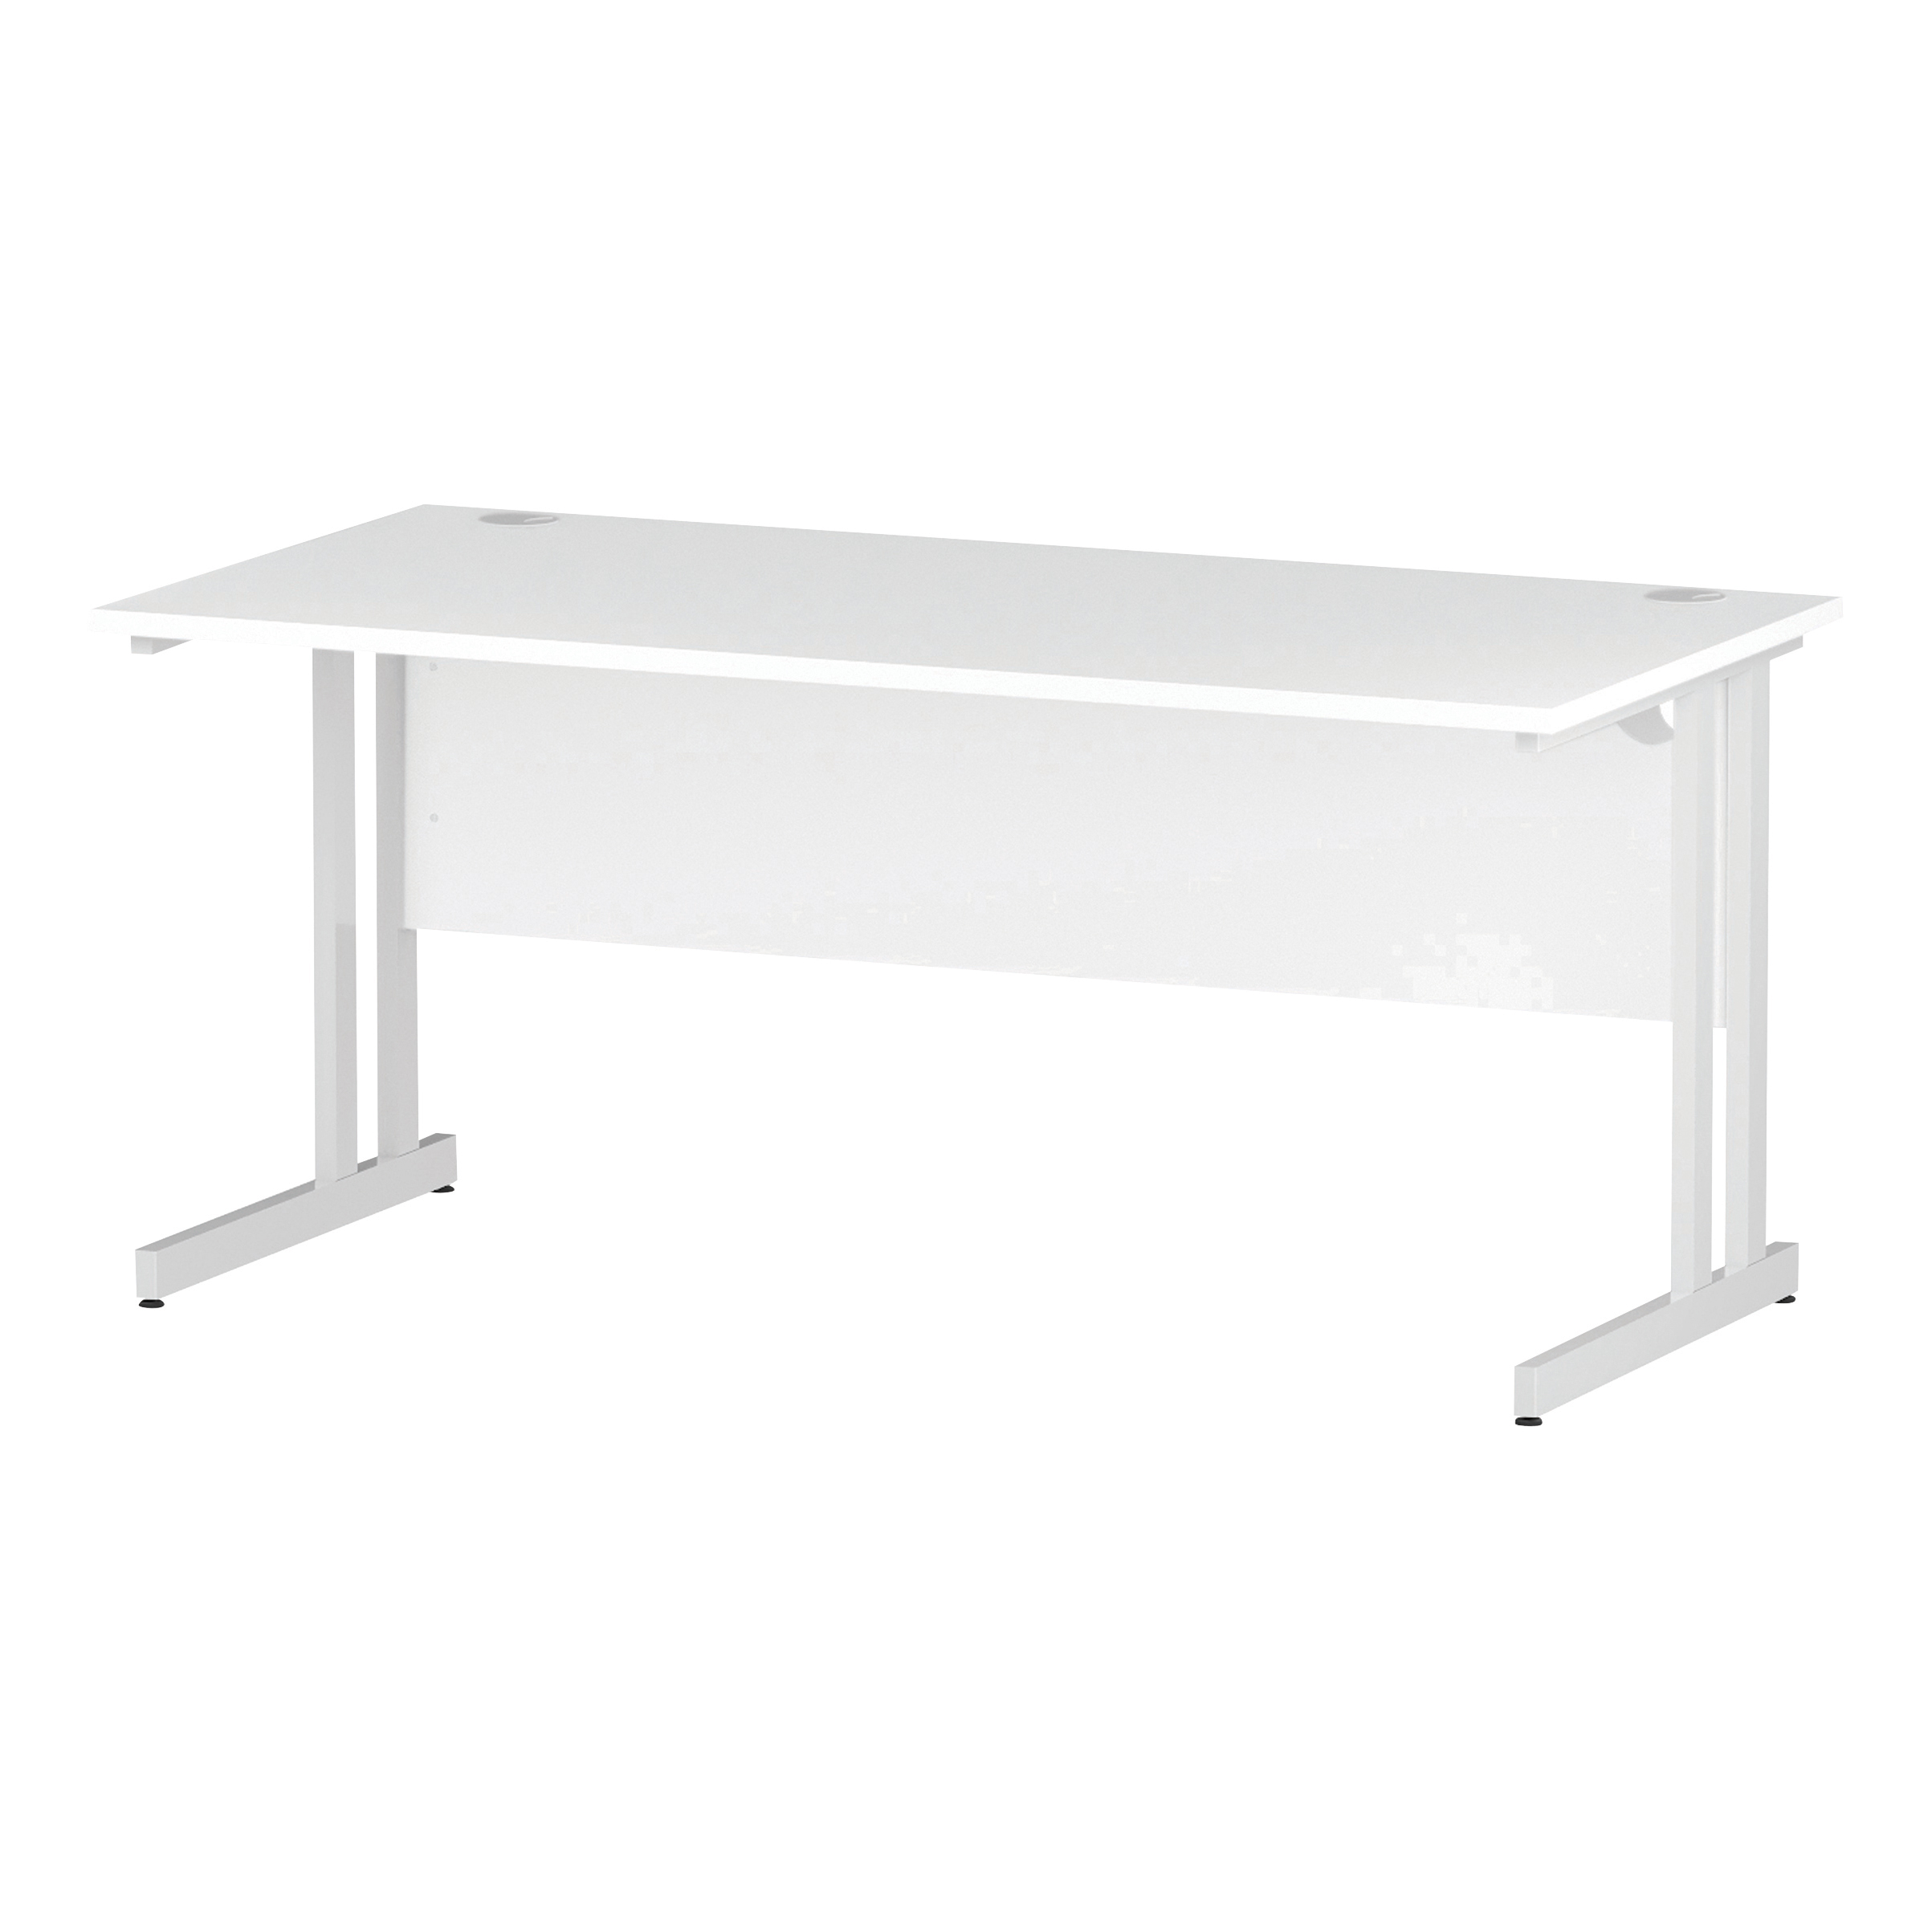 Trexus Rectangular Desk White Cantilever Leg 1600x800mm White Ref I002193